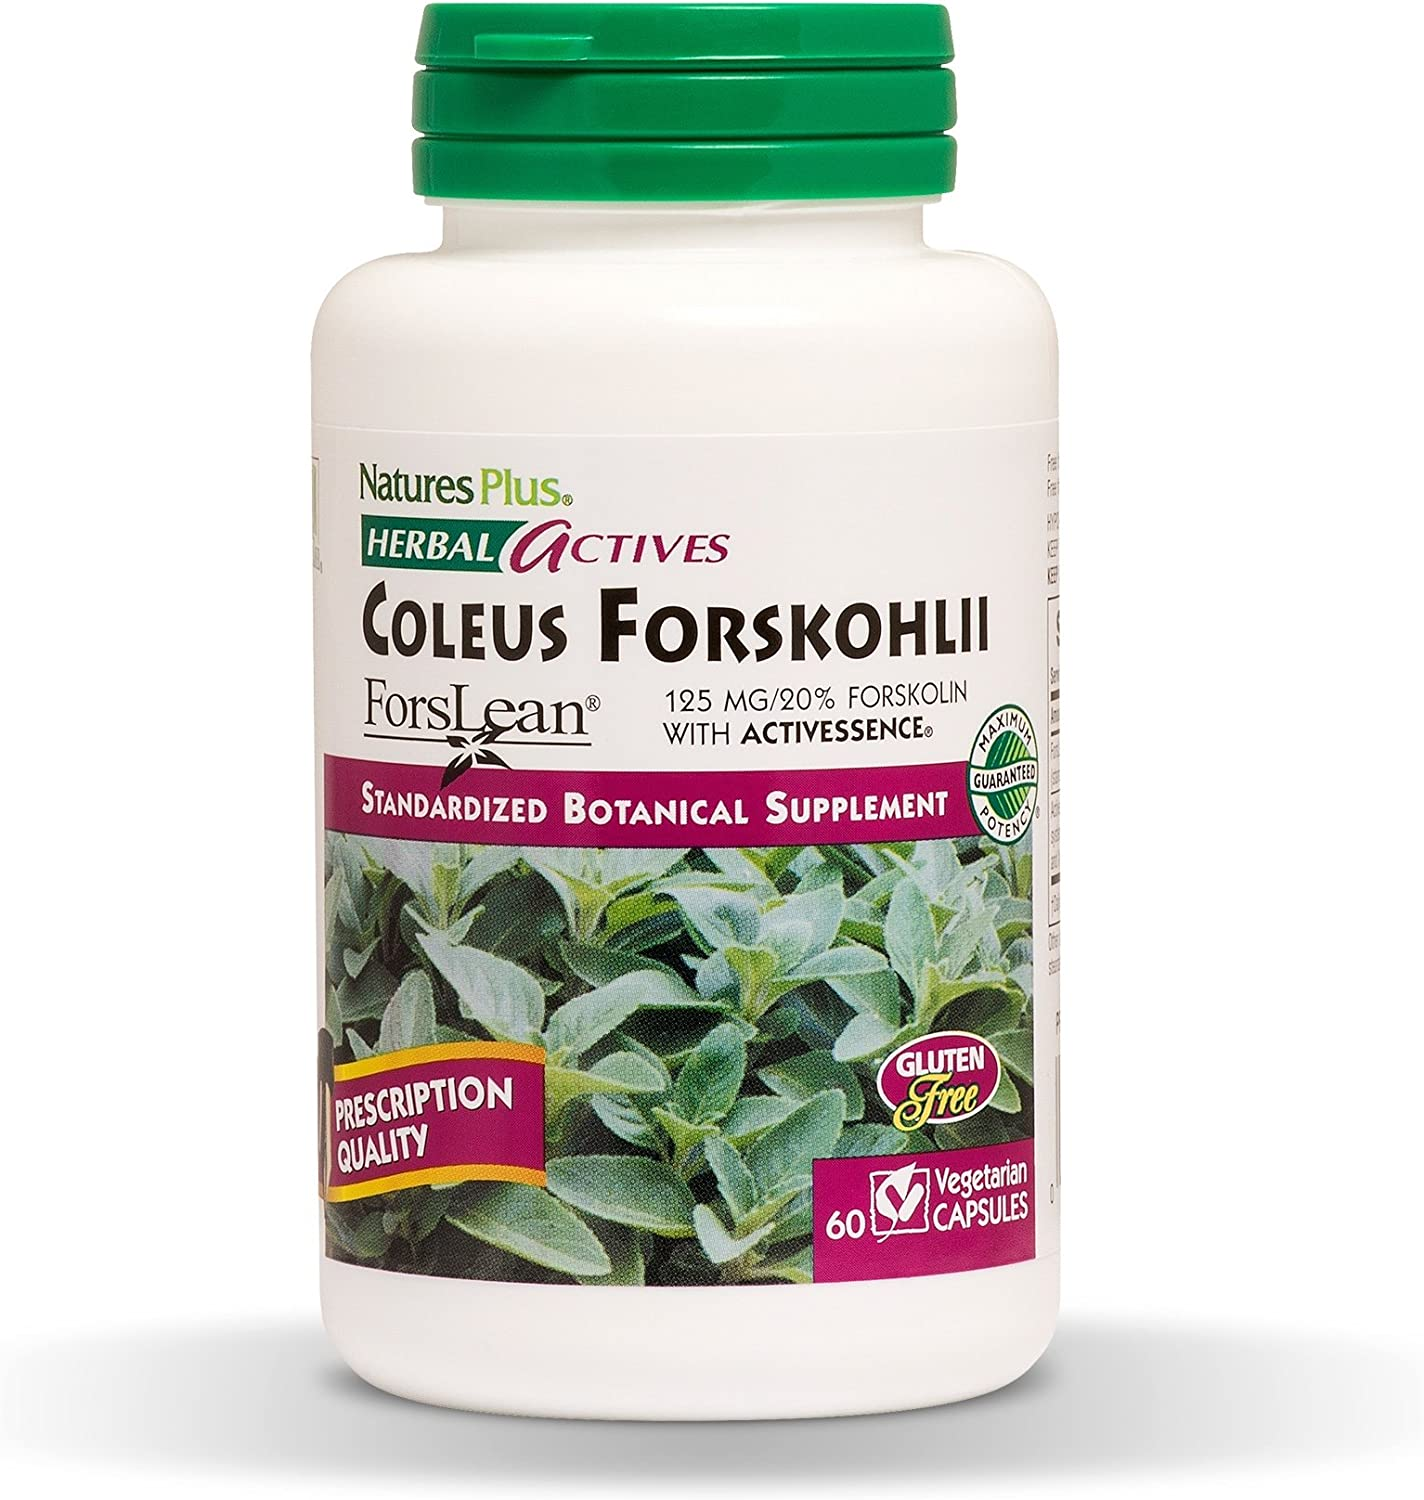 NaturesPlus Herbal Actives Coleus Forskohlii – 125 mg, 60 Vegan Capsules – Heart Support Supplement, Supports Healthy Metabolism – Vegetarian, Gluten-Free – 60 Servings